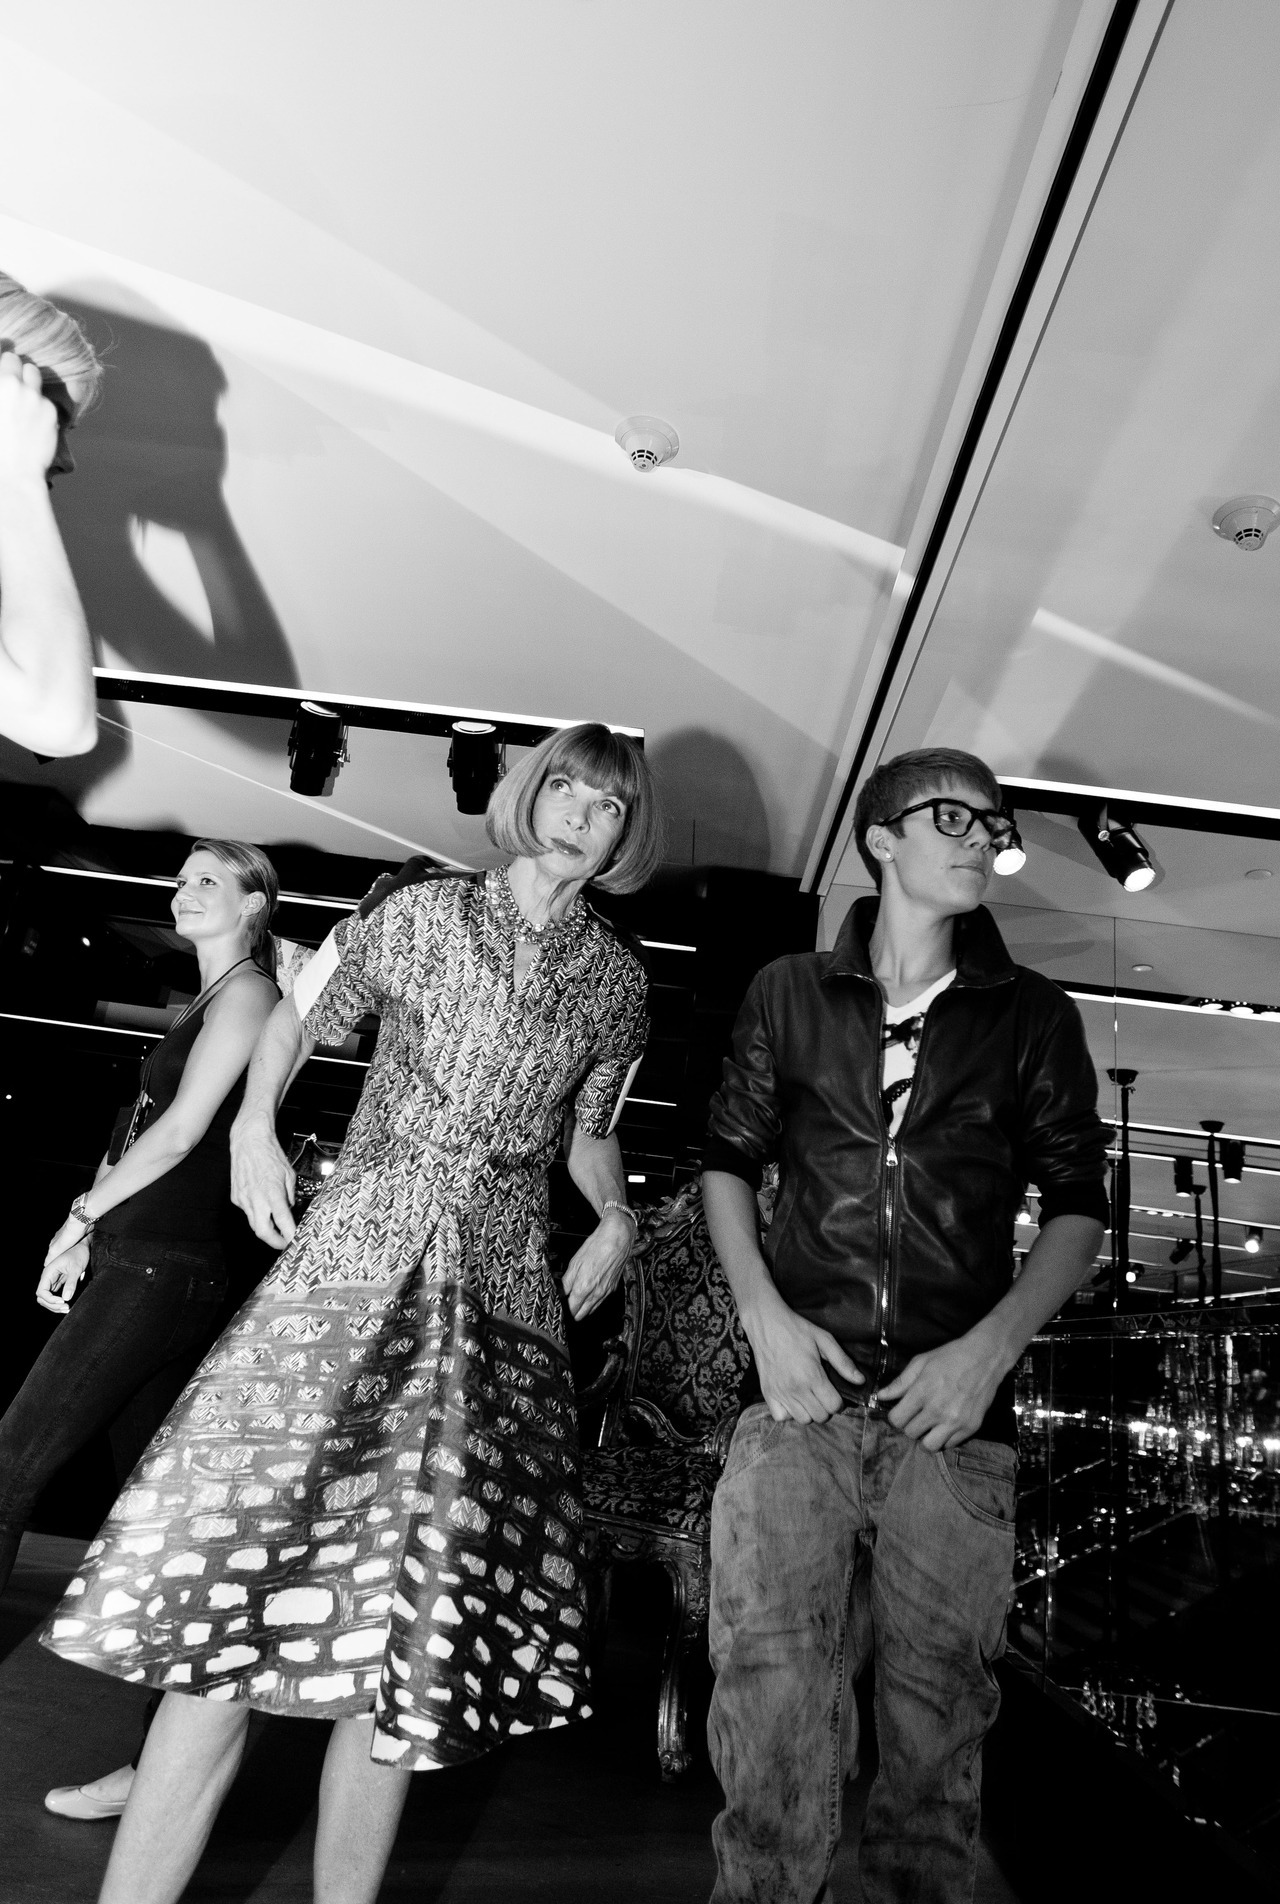 Anna Wintour and Justin Bieber (by Mike Lerner)